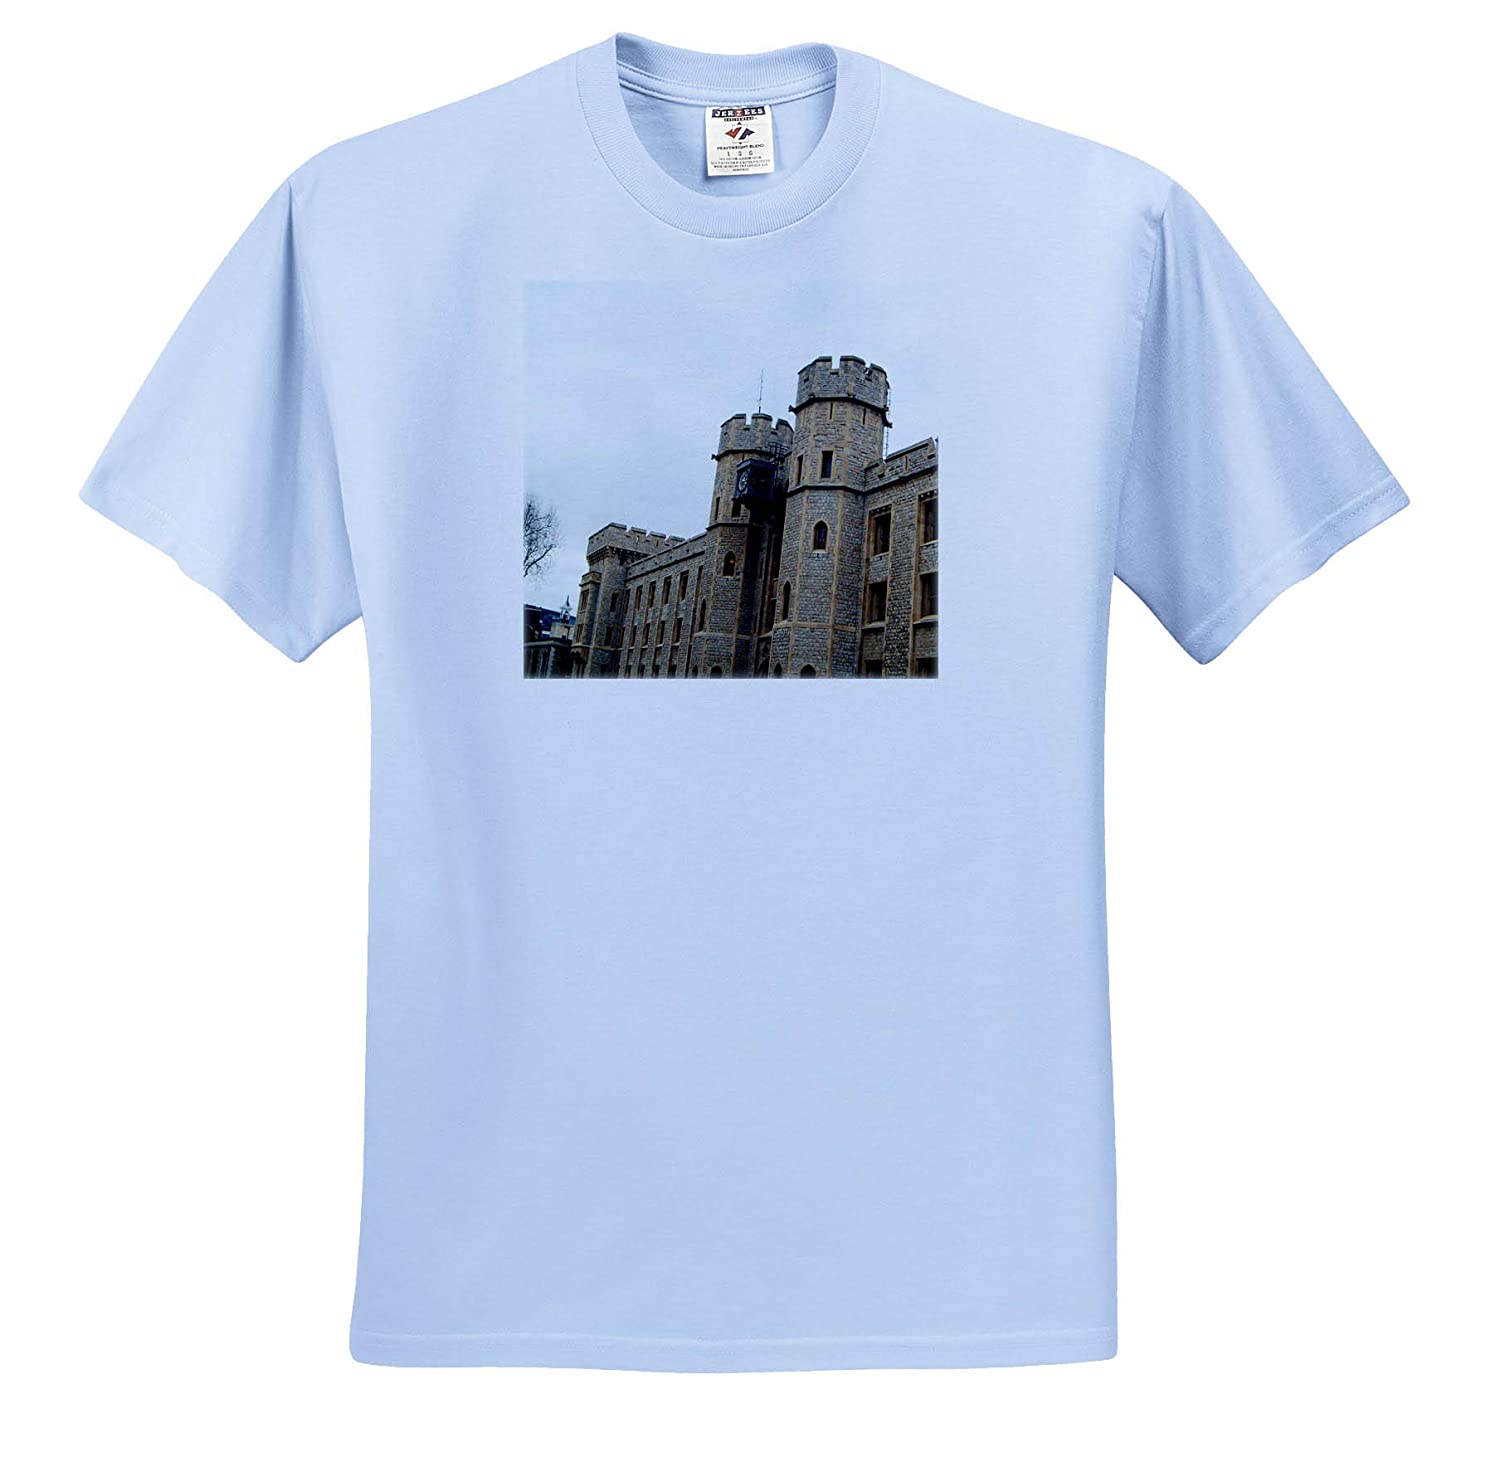 The London Tower Taken from a Side View with Castle Details LondonTower 3dRose Jos Fauxtographee T-Shirts